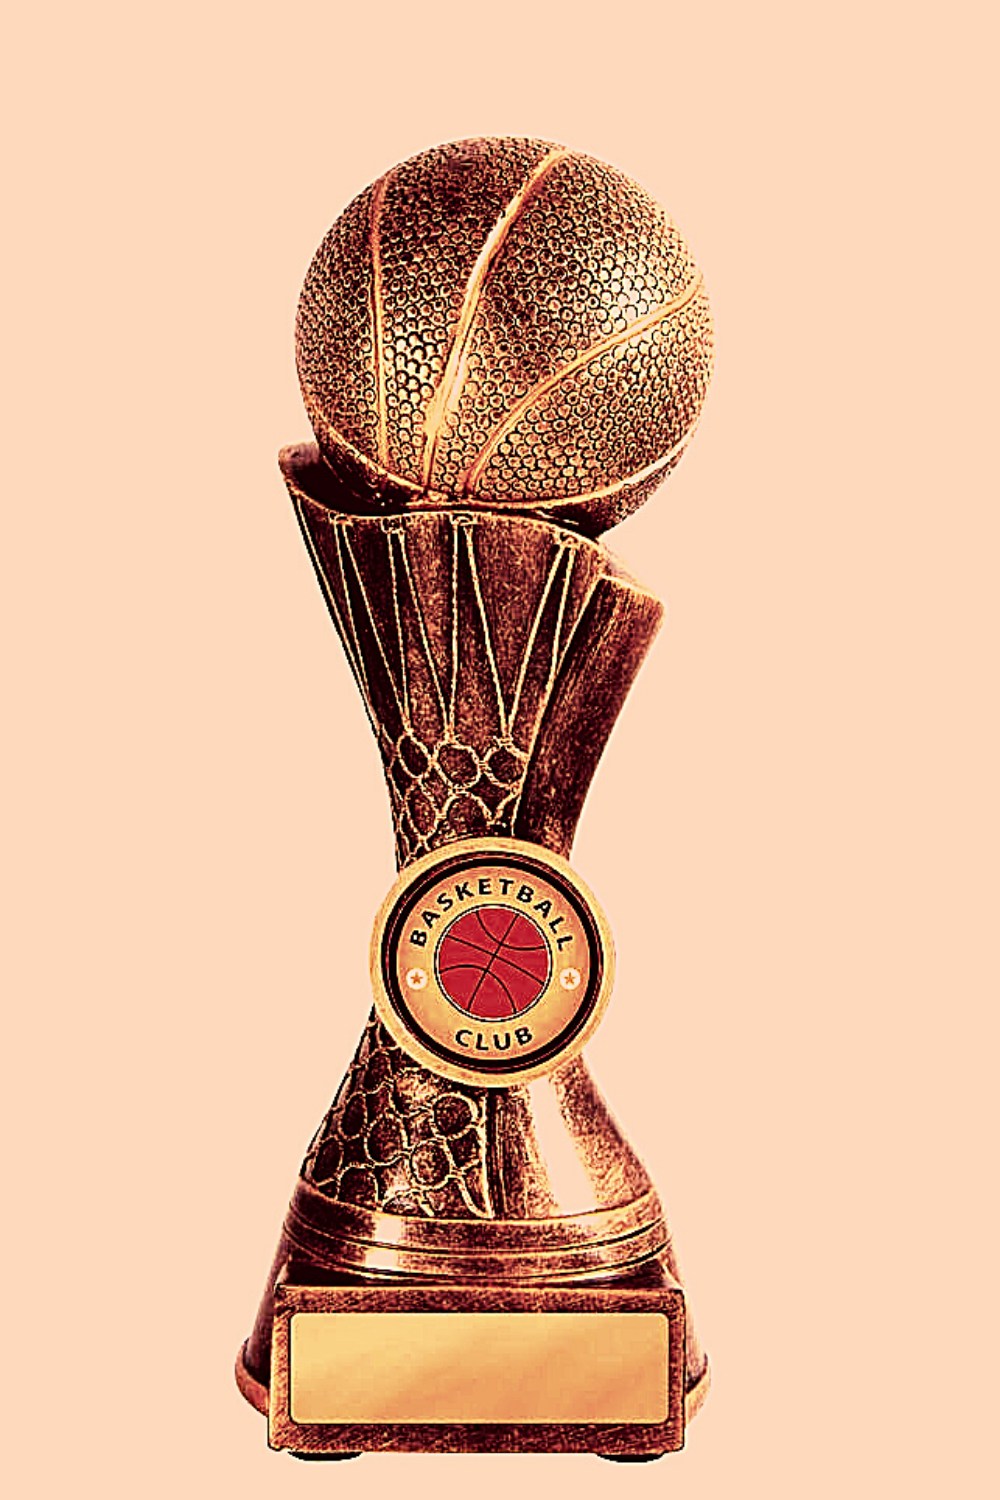 Basketball Trophies Come In A Huge Variety Of Shapes And Sizes Basketball Trophies Basketball Equipment Basketball